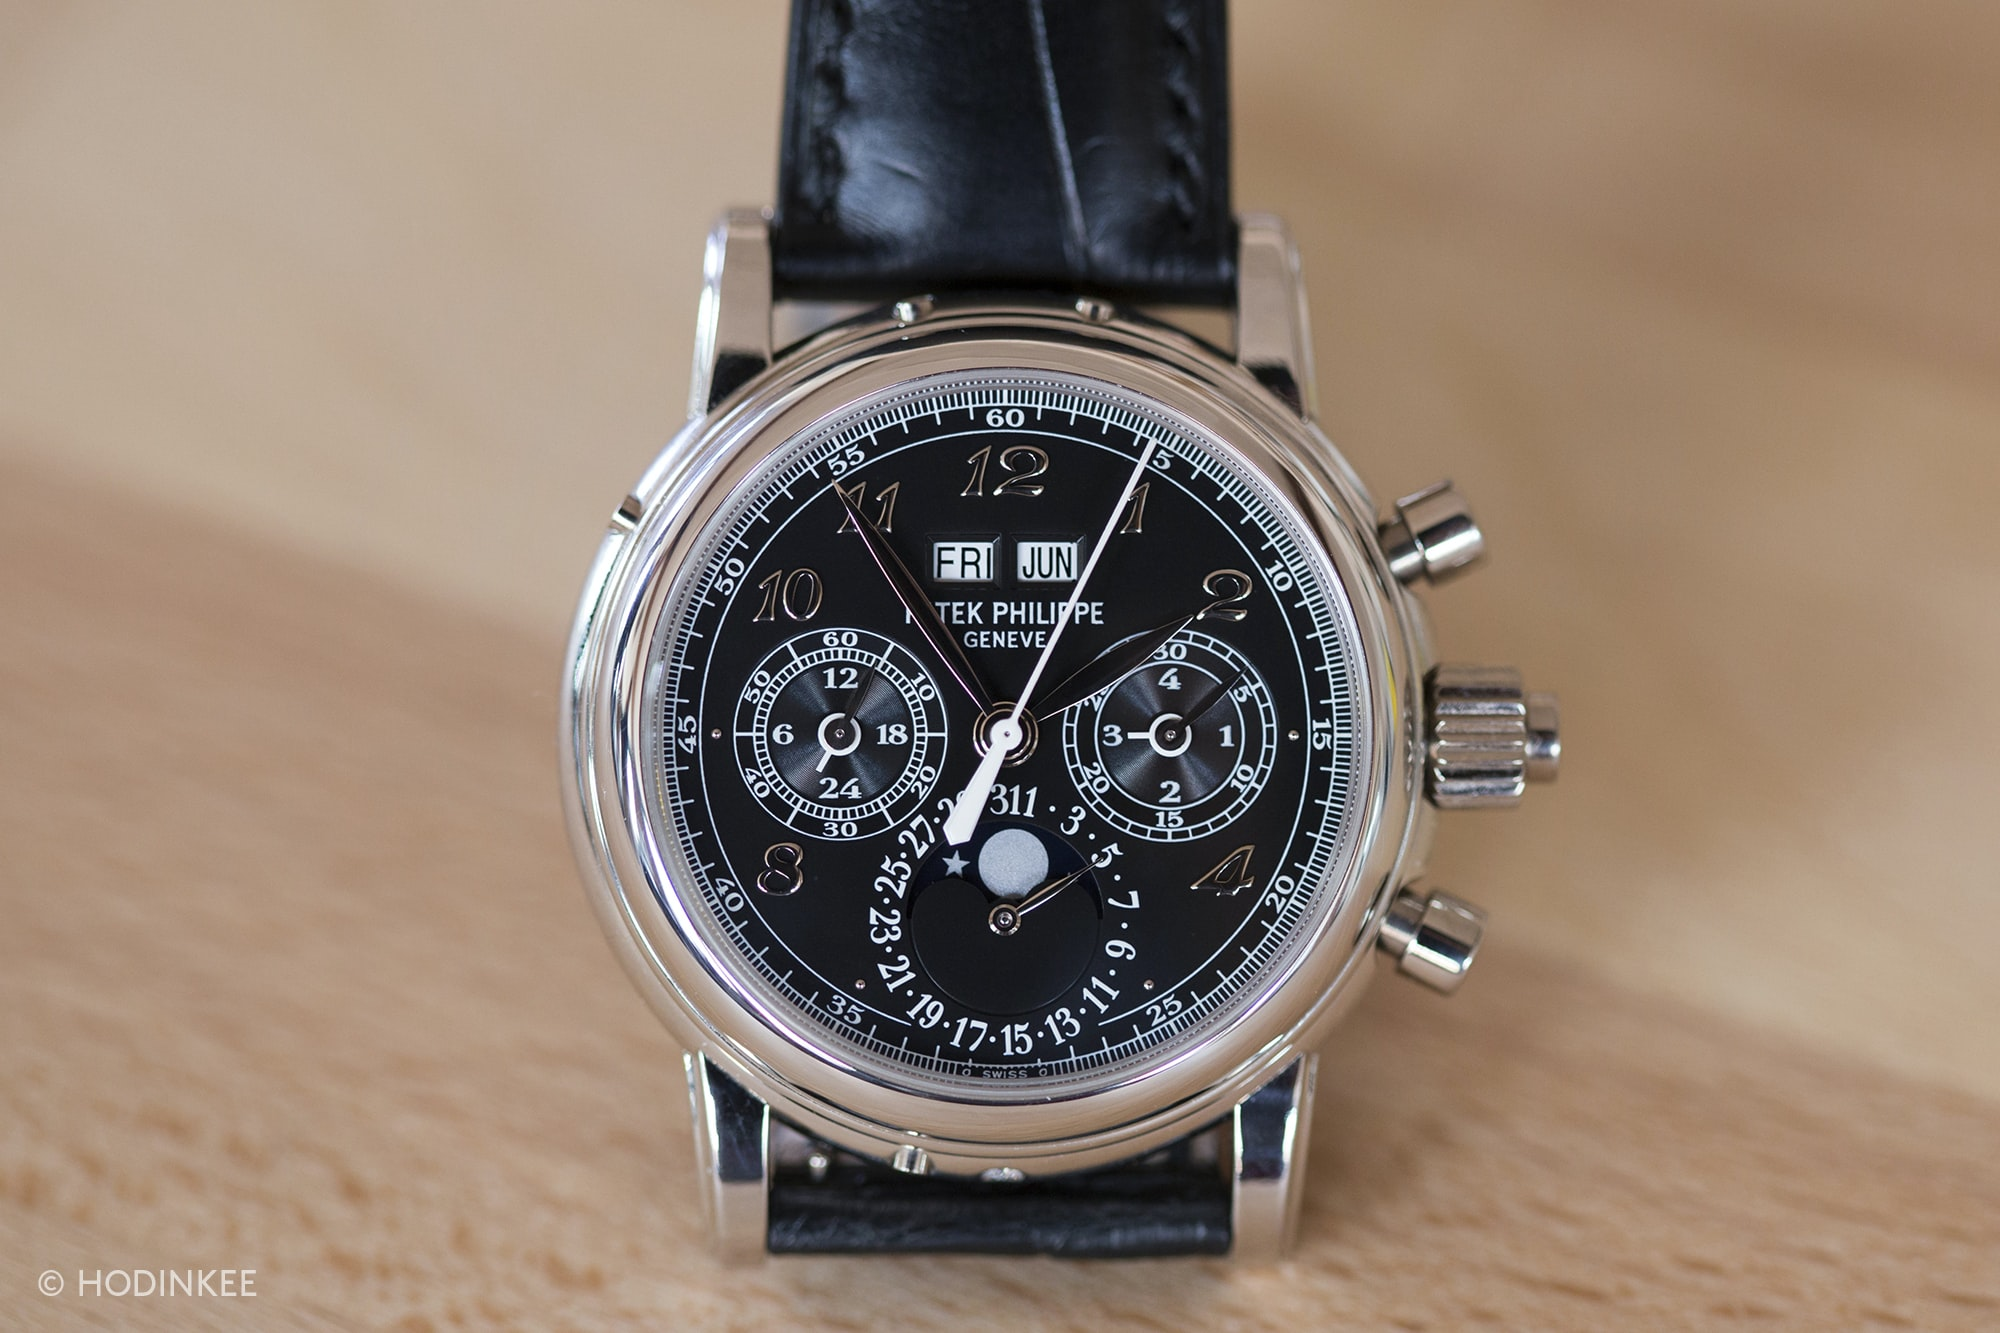 Patek Philippe Reference 5004P With Breguet Numerals Talking Watches: With Roni Madhvani Talking Watches: With Roni Madhvani 20010159 copy